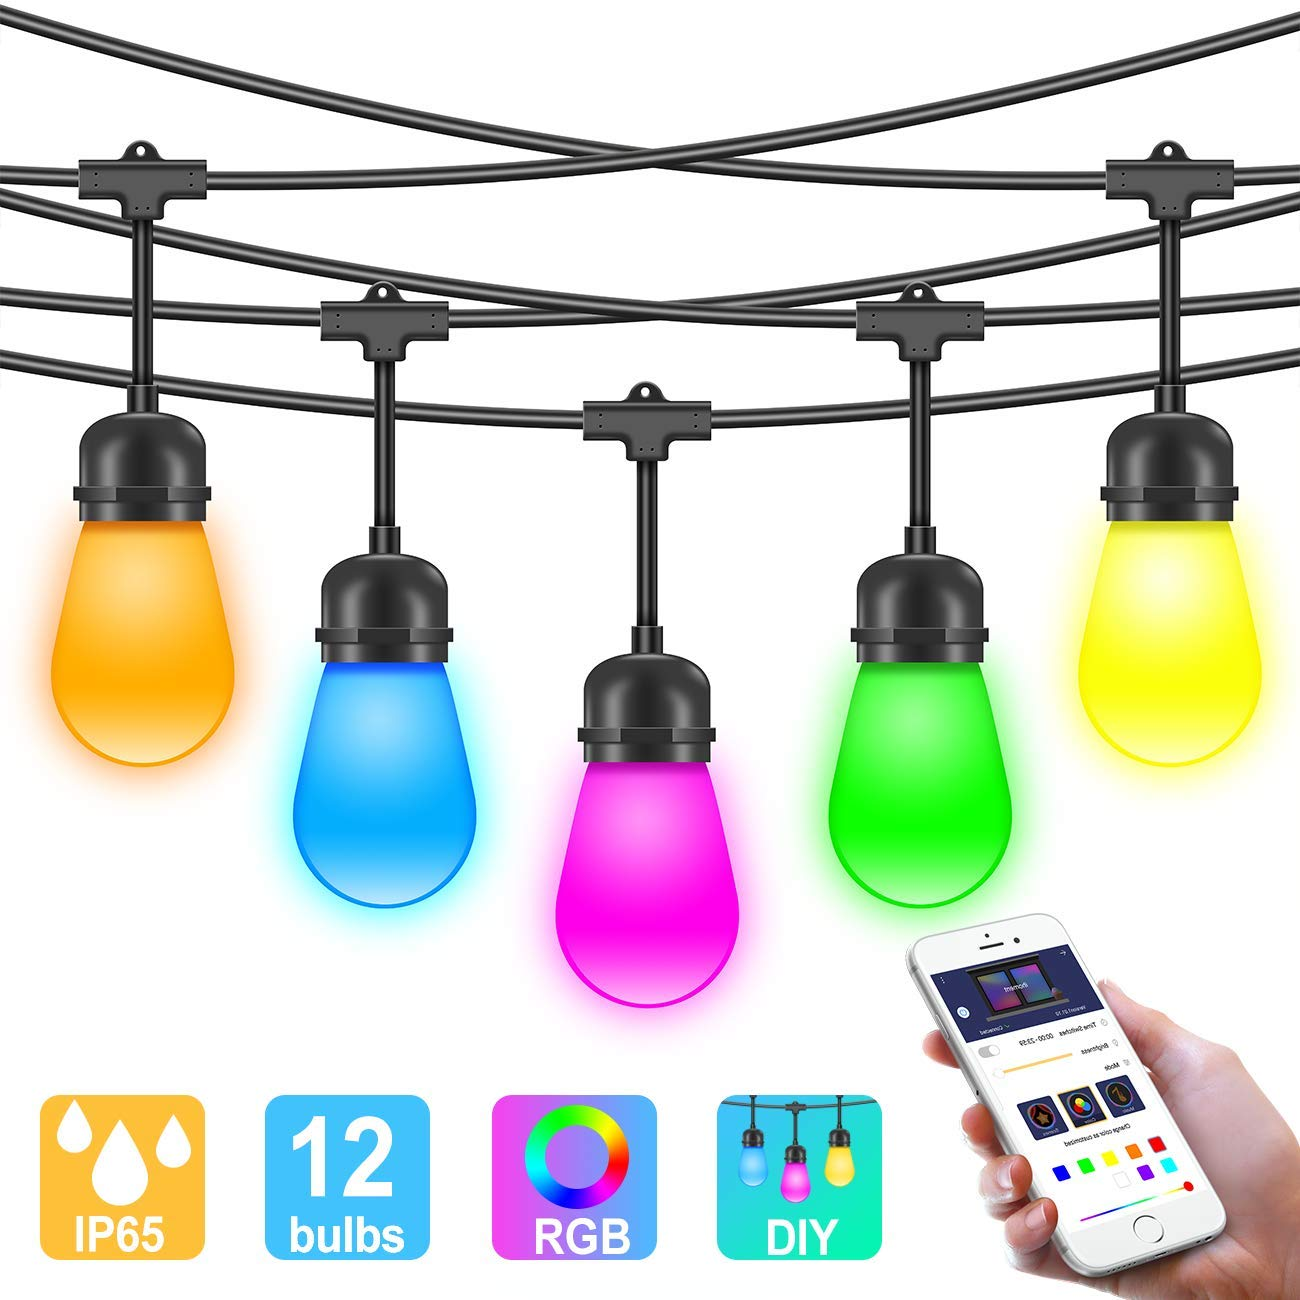 Details about Outdoor Color Changing LED String Lights w/APP, Sync to Music  Dimmable FREE S&H